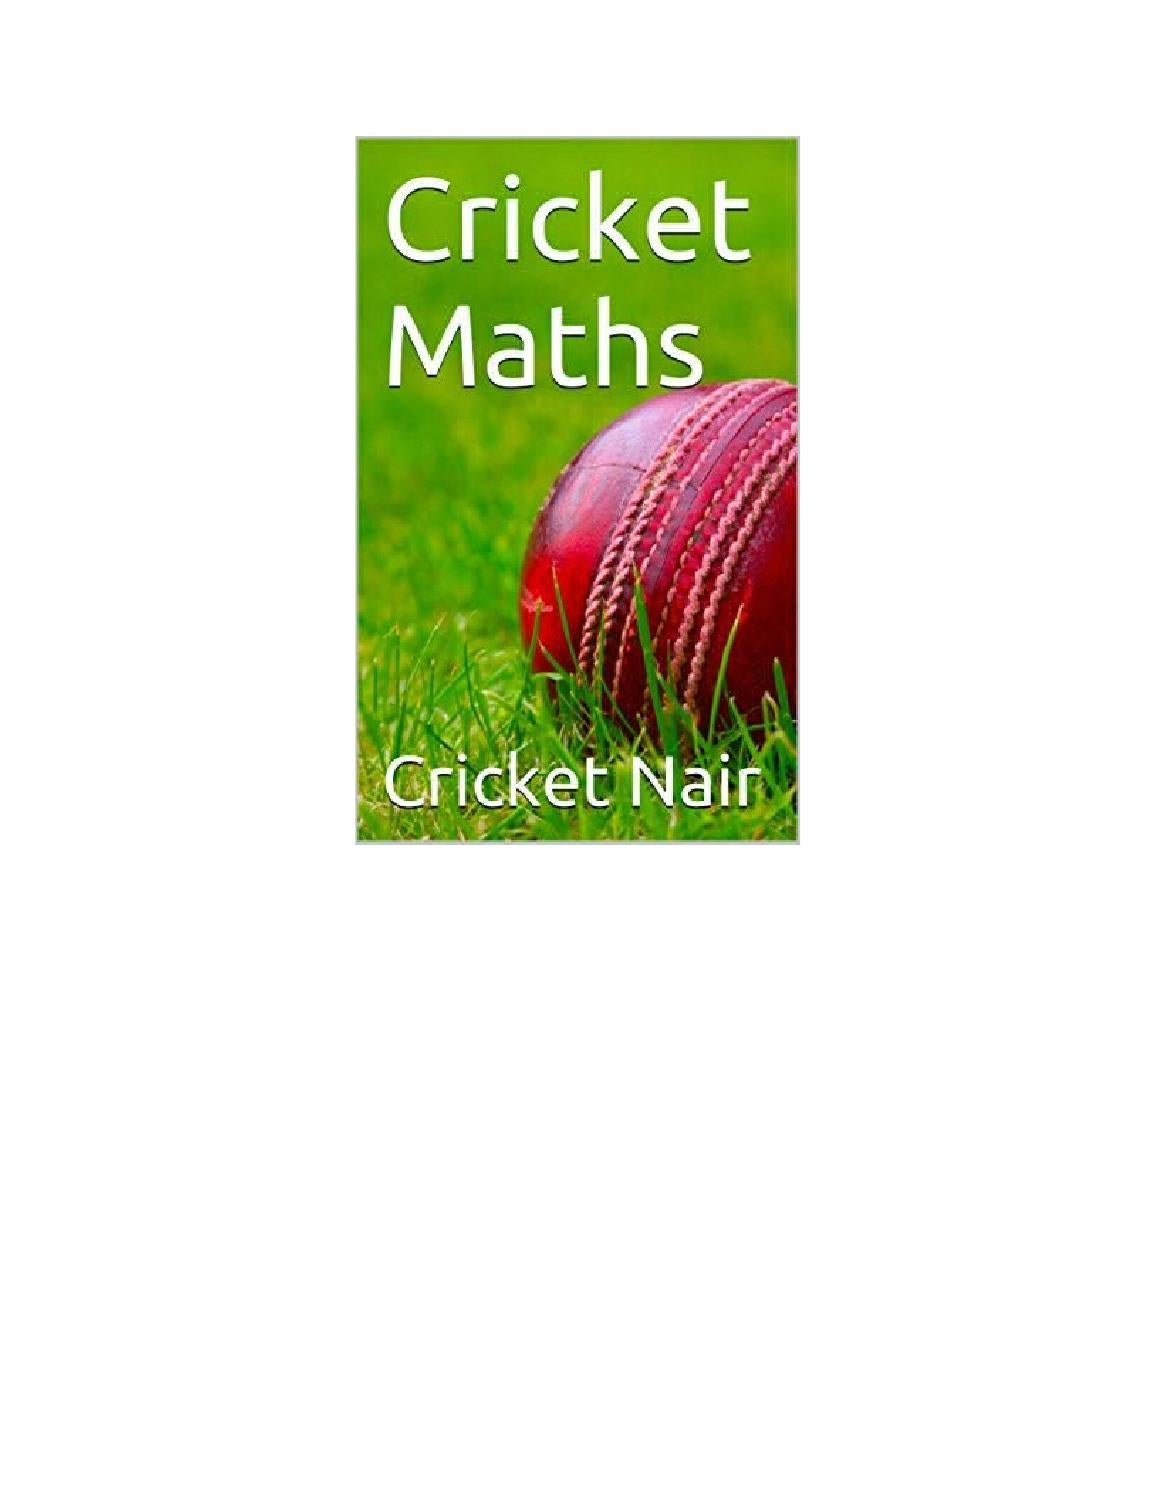 Cricket maths by Prasant - issuu